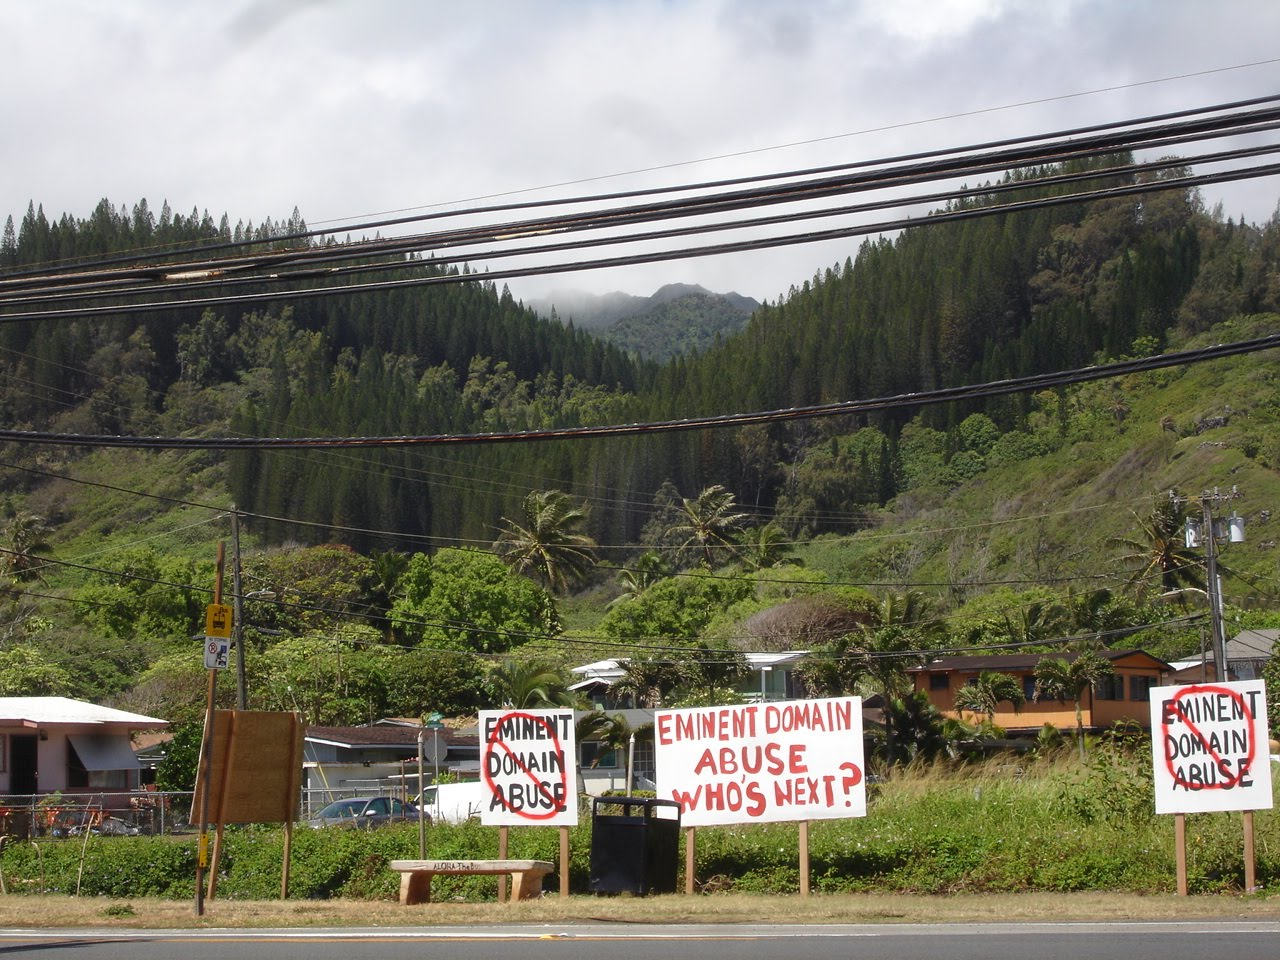 Hawaii Eminent Domain Abuse